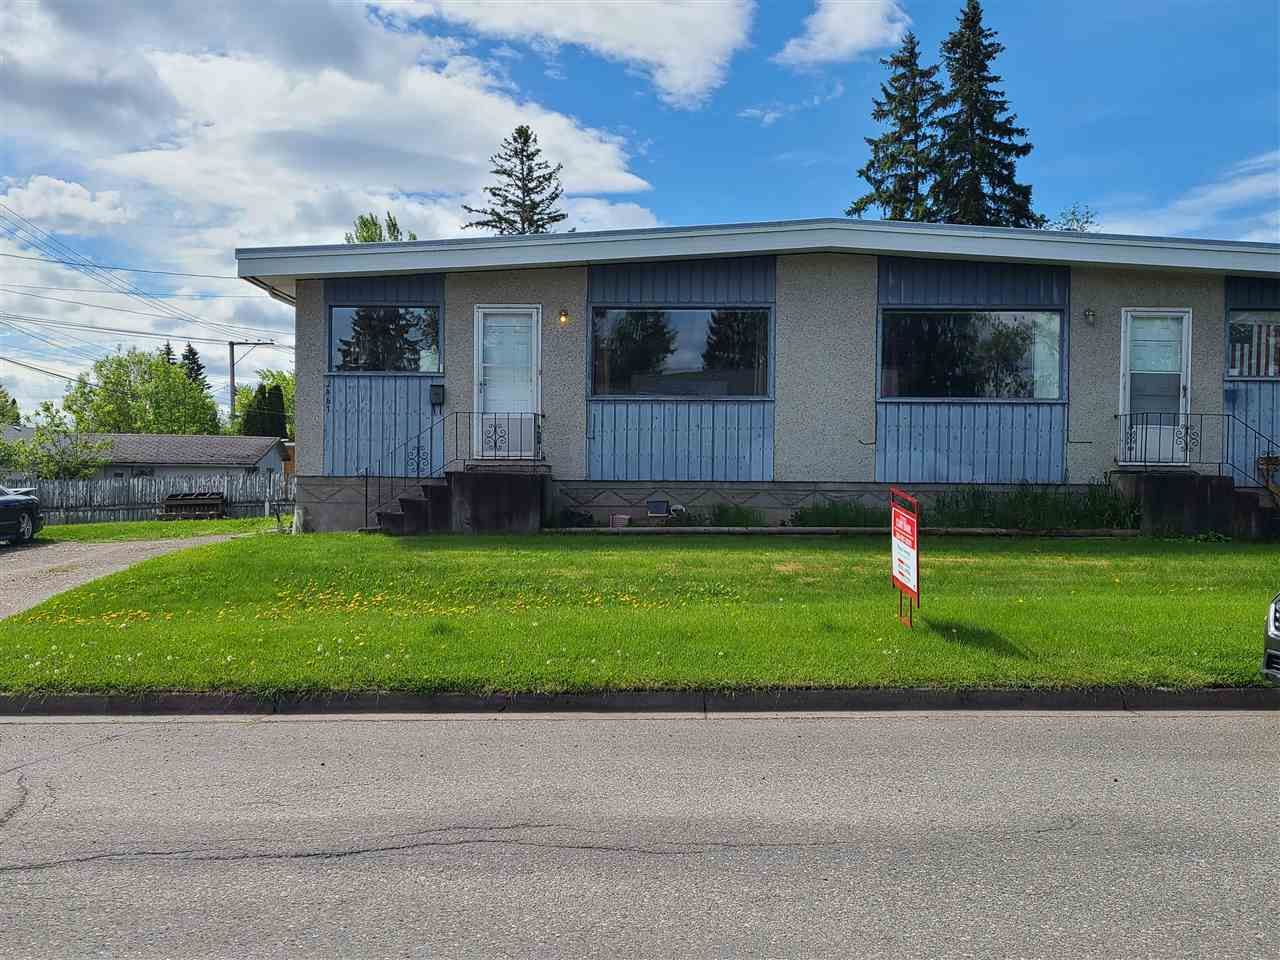 Main Photo: 2461 8TH Avenue in Prince George: Central Duplex for sale (PG City Central (Zone 72))  : MLS®# R2586461